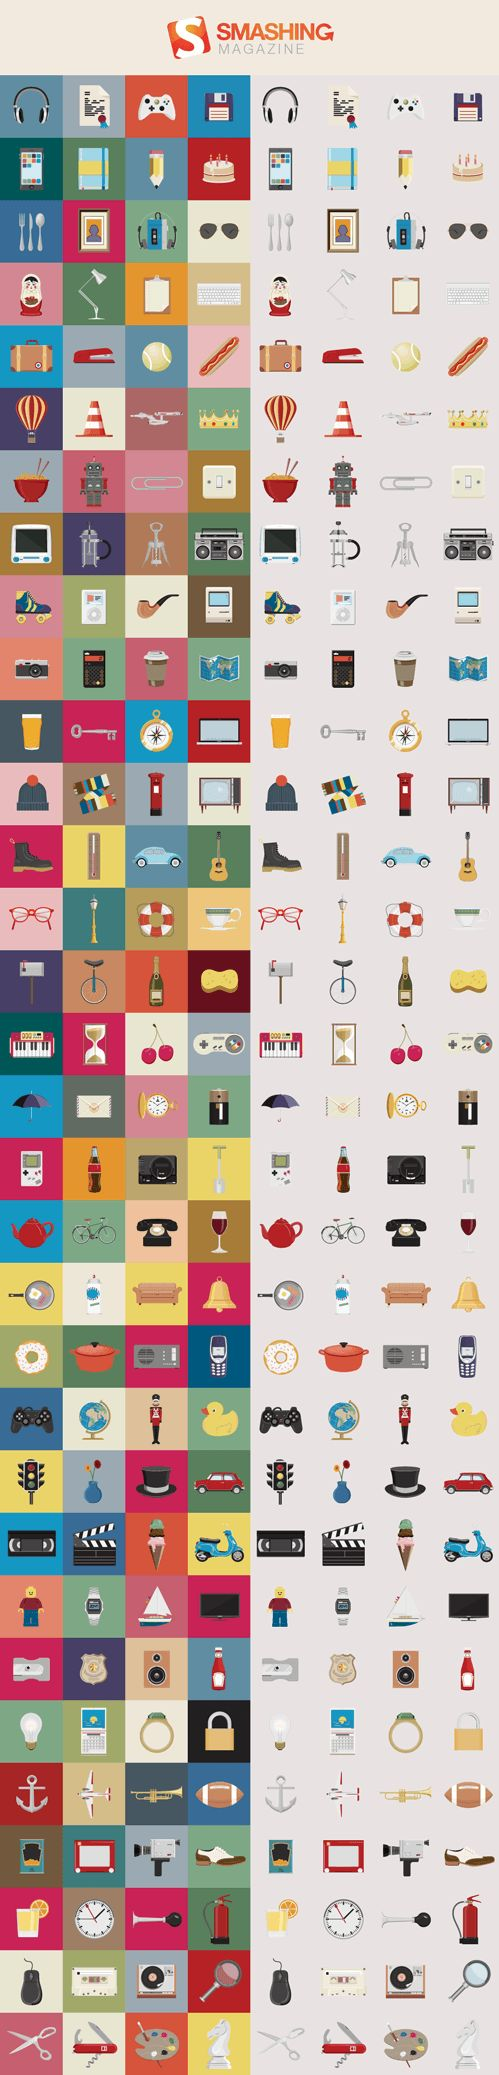 Freebie: Nice Things Icon Set (128 Icons, PNG + AI Source) by Chris Behr on Smashing Magazine